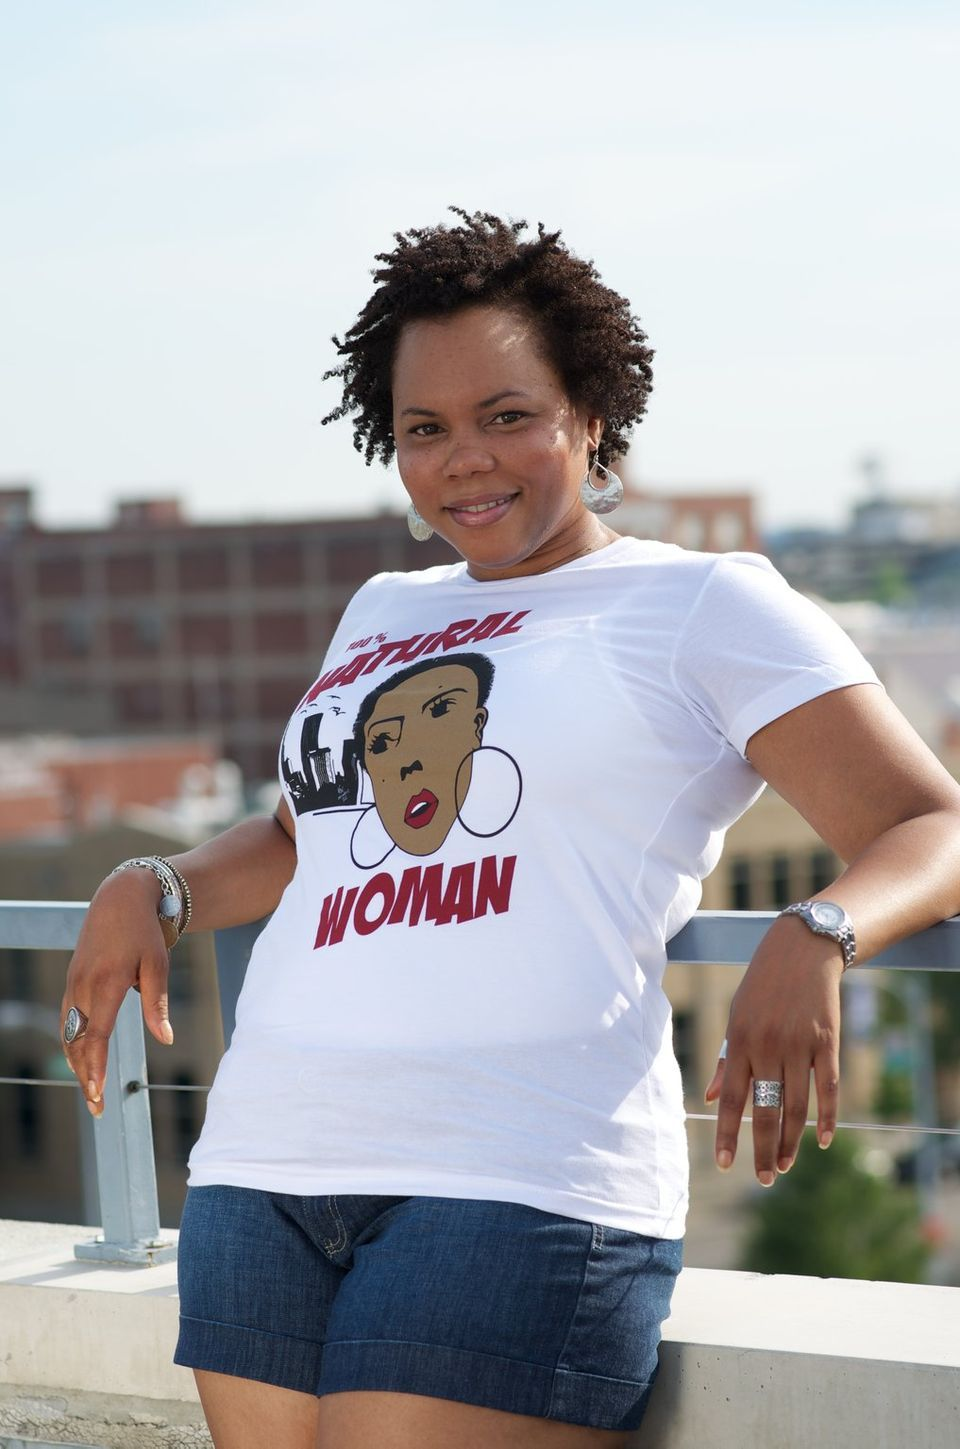 Woman's Journey Leads to New Business Women, Fashion